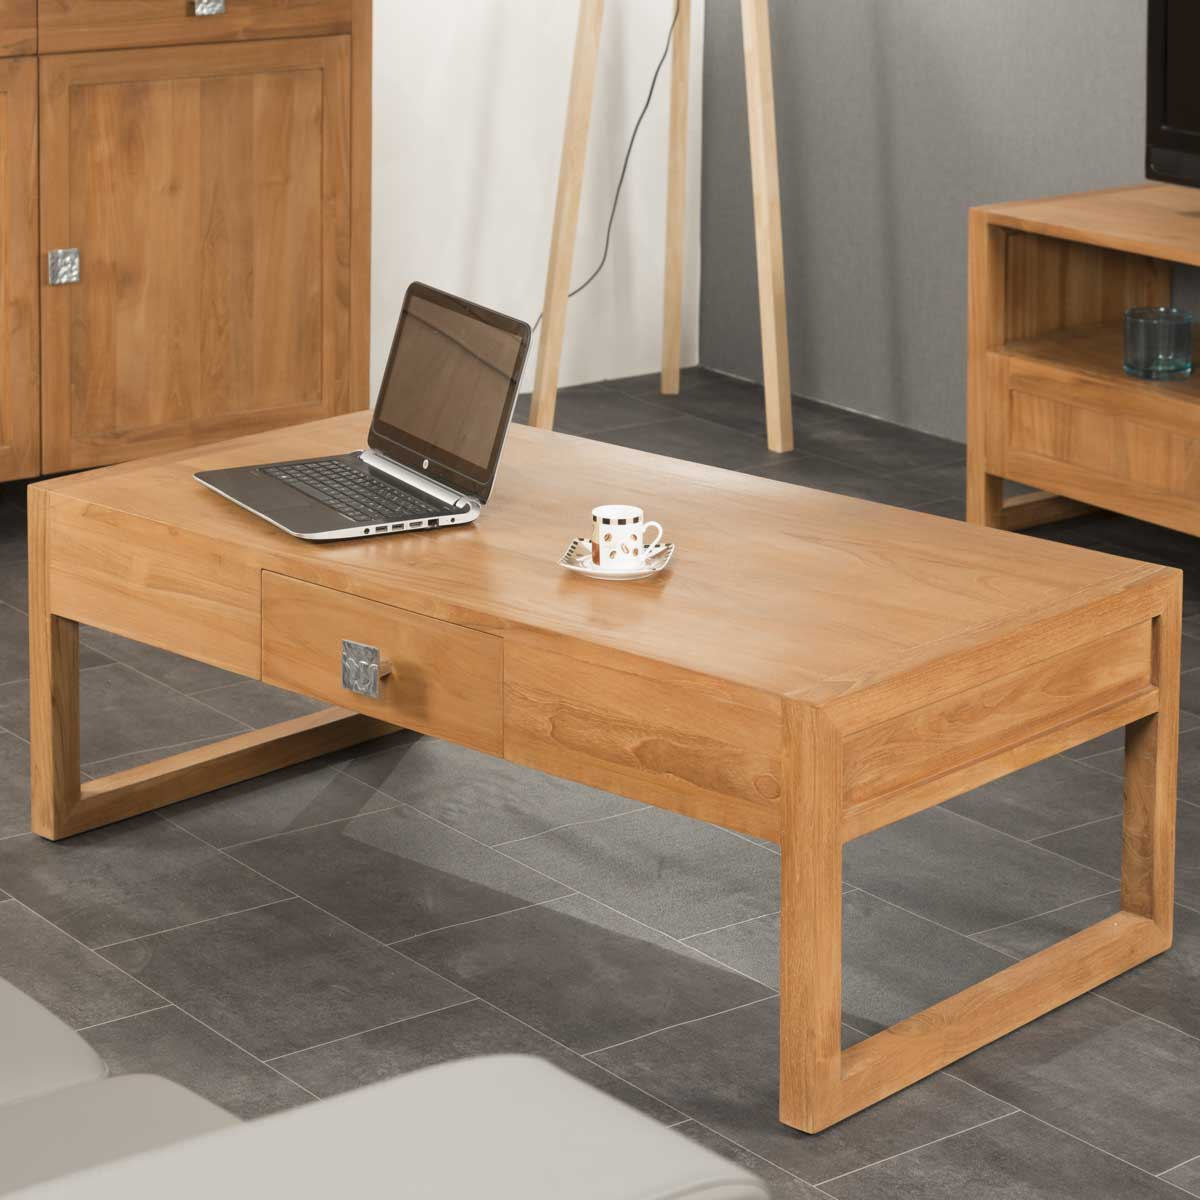 table basse teck massif rectangle bois naturel th a 110 cm. Black Bedroom Furniture Sets. Home Design Ideas